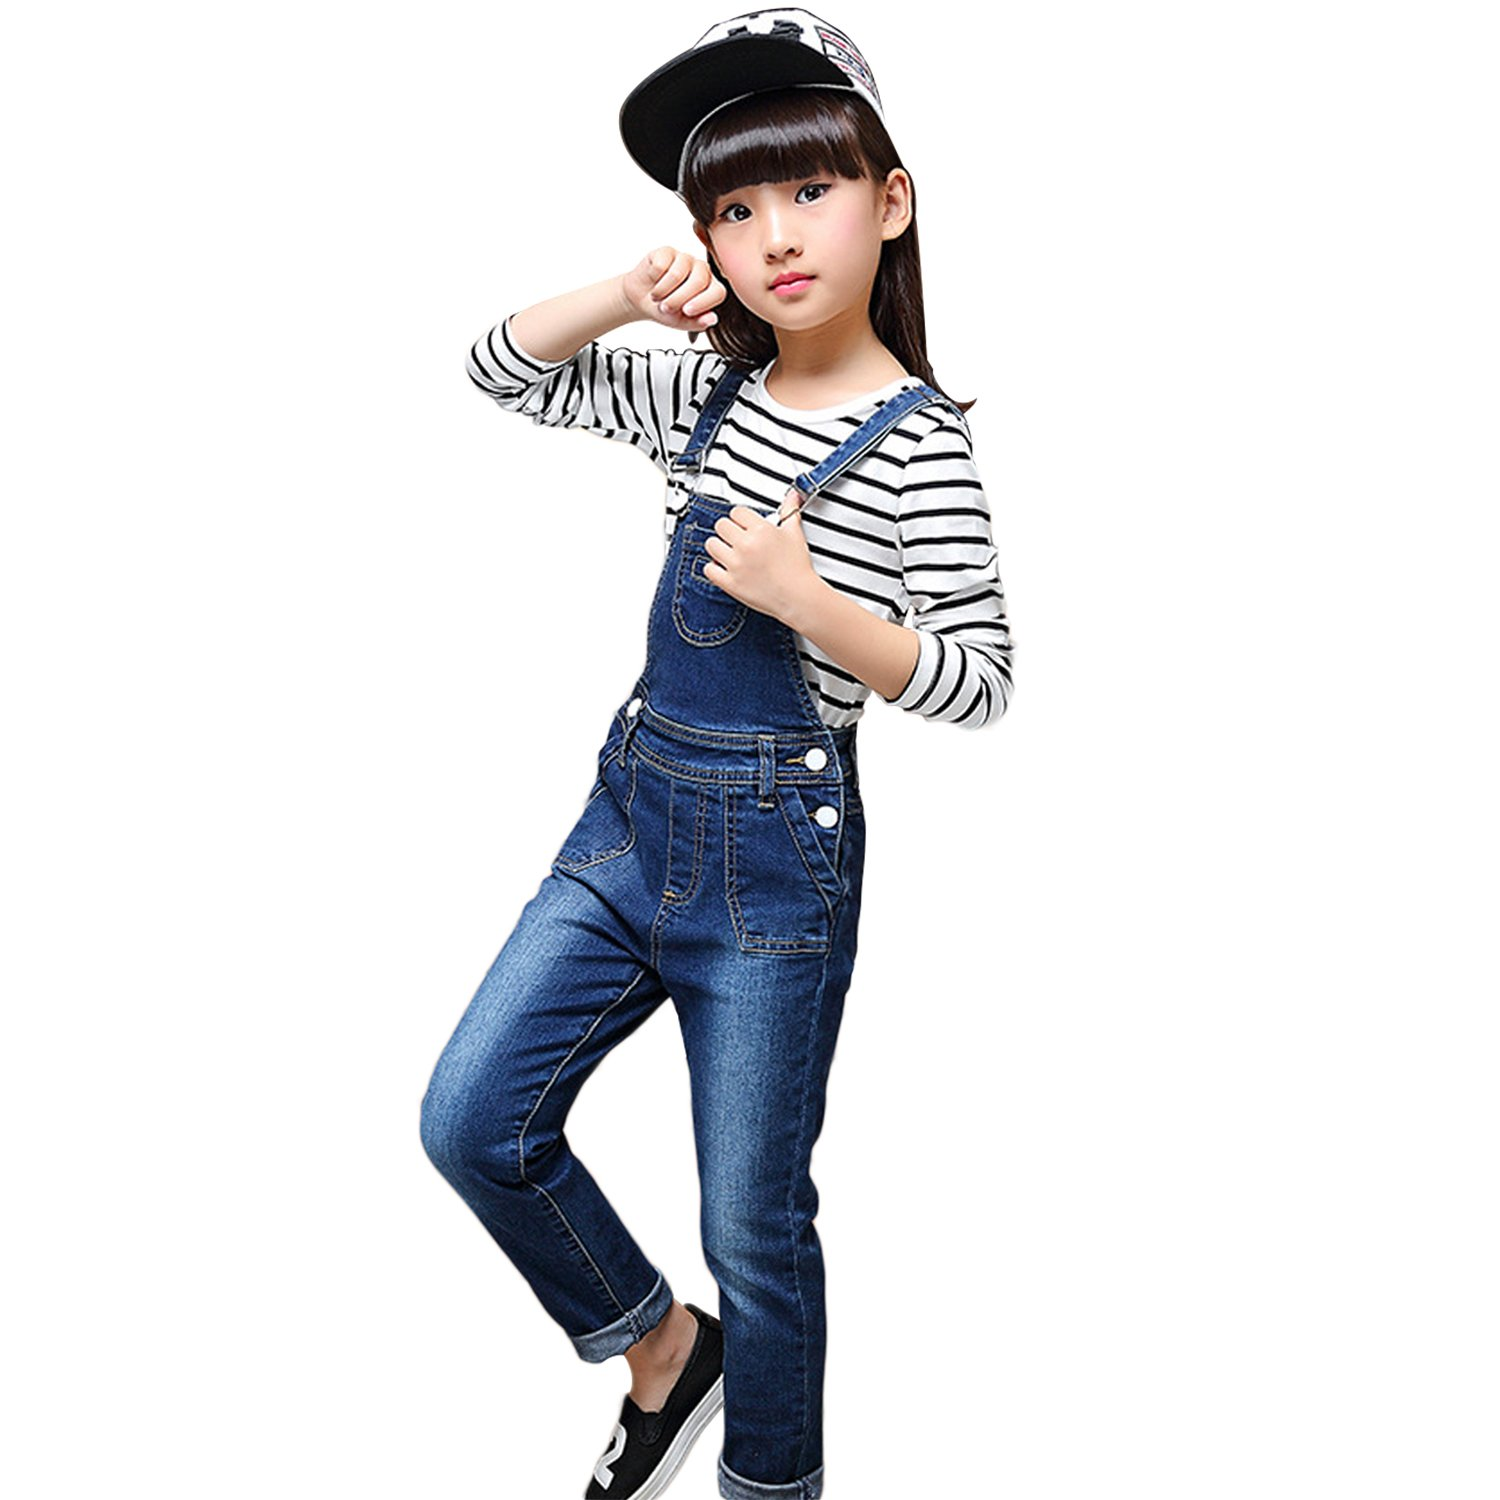 YJ.GWL Girls Denim Overalls Sets Stripe Top 2 Pieces Girls Outfits